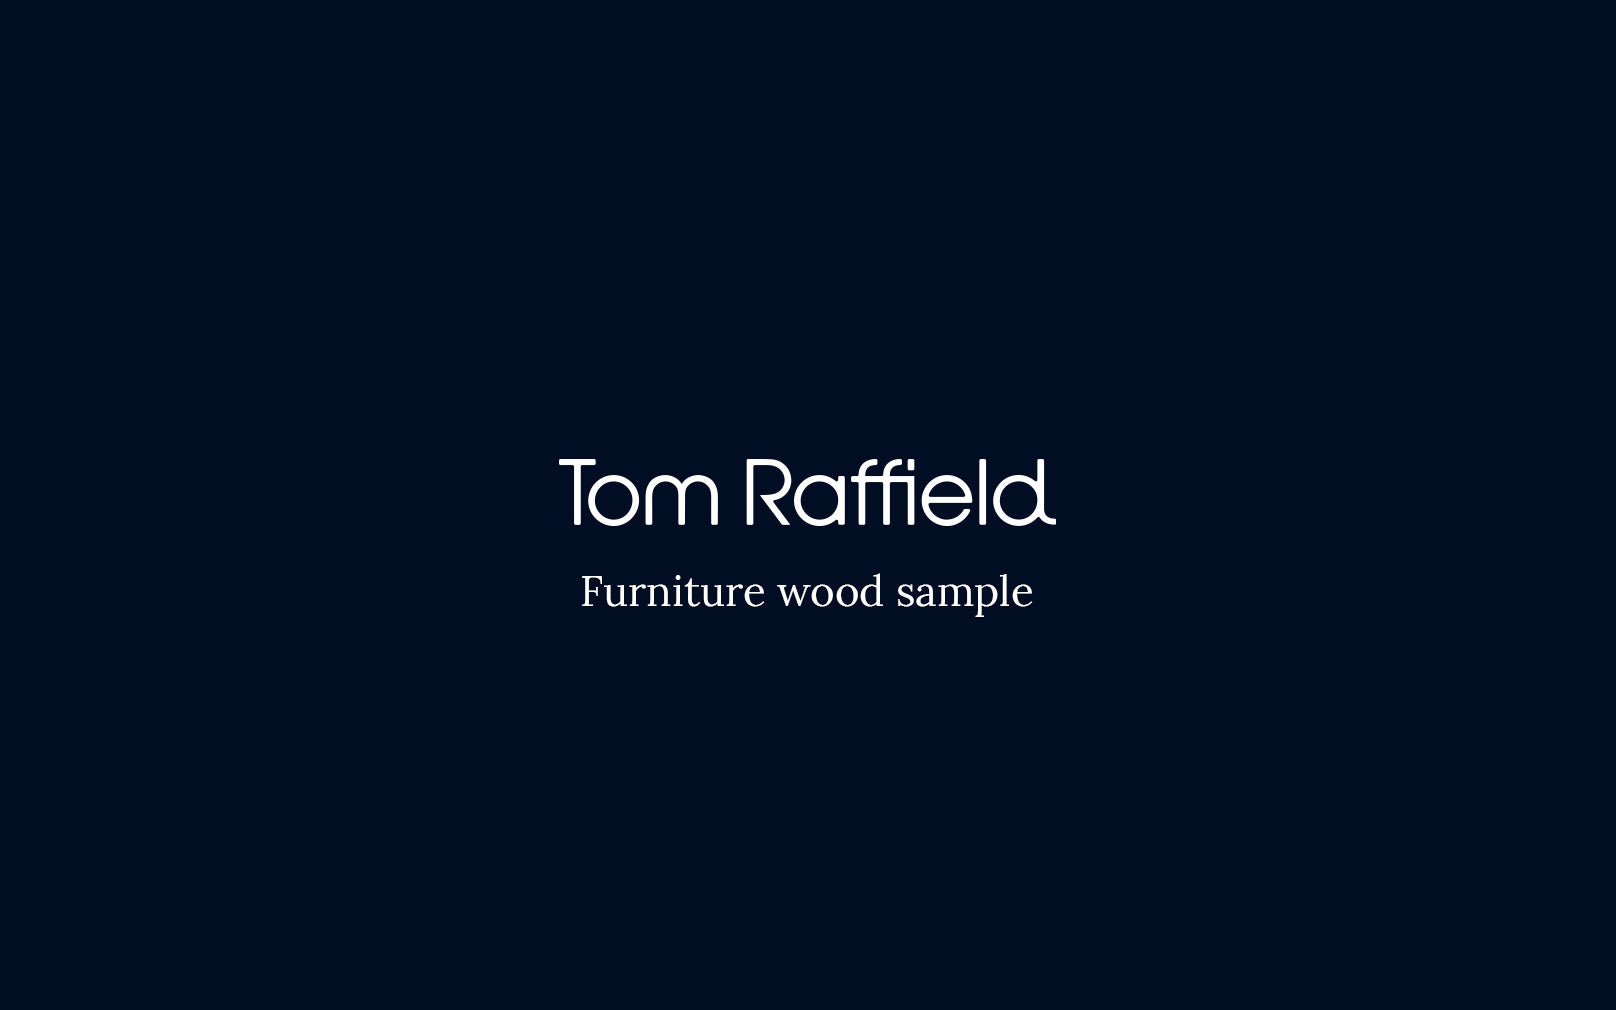 Tom Raffield Furniture Wood Sample